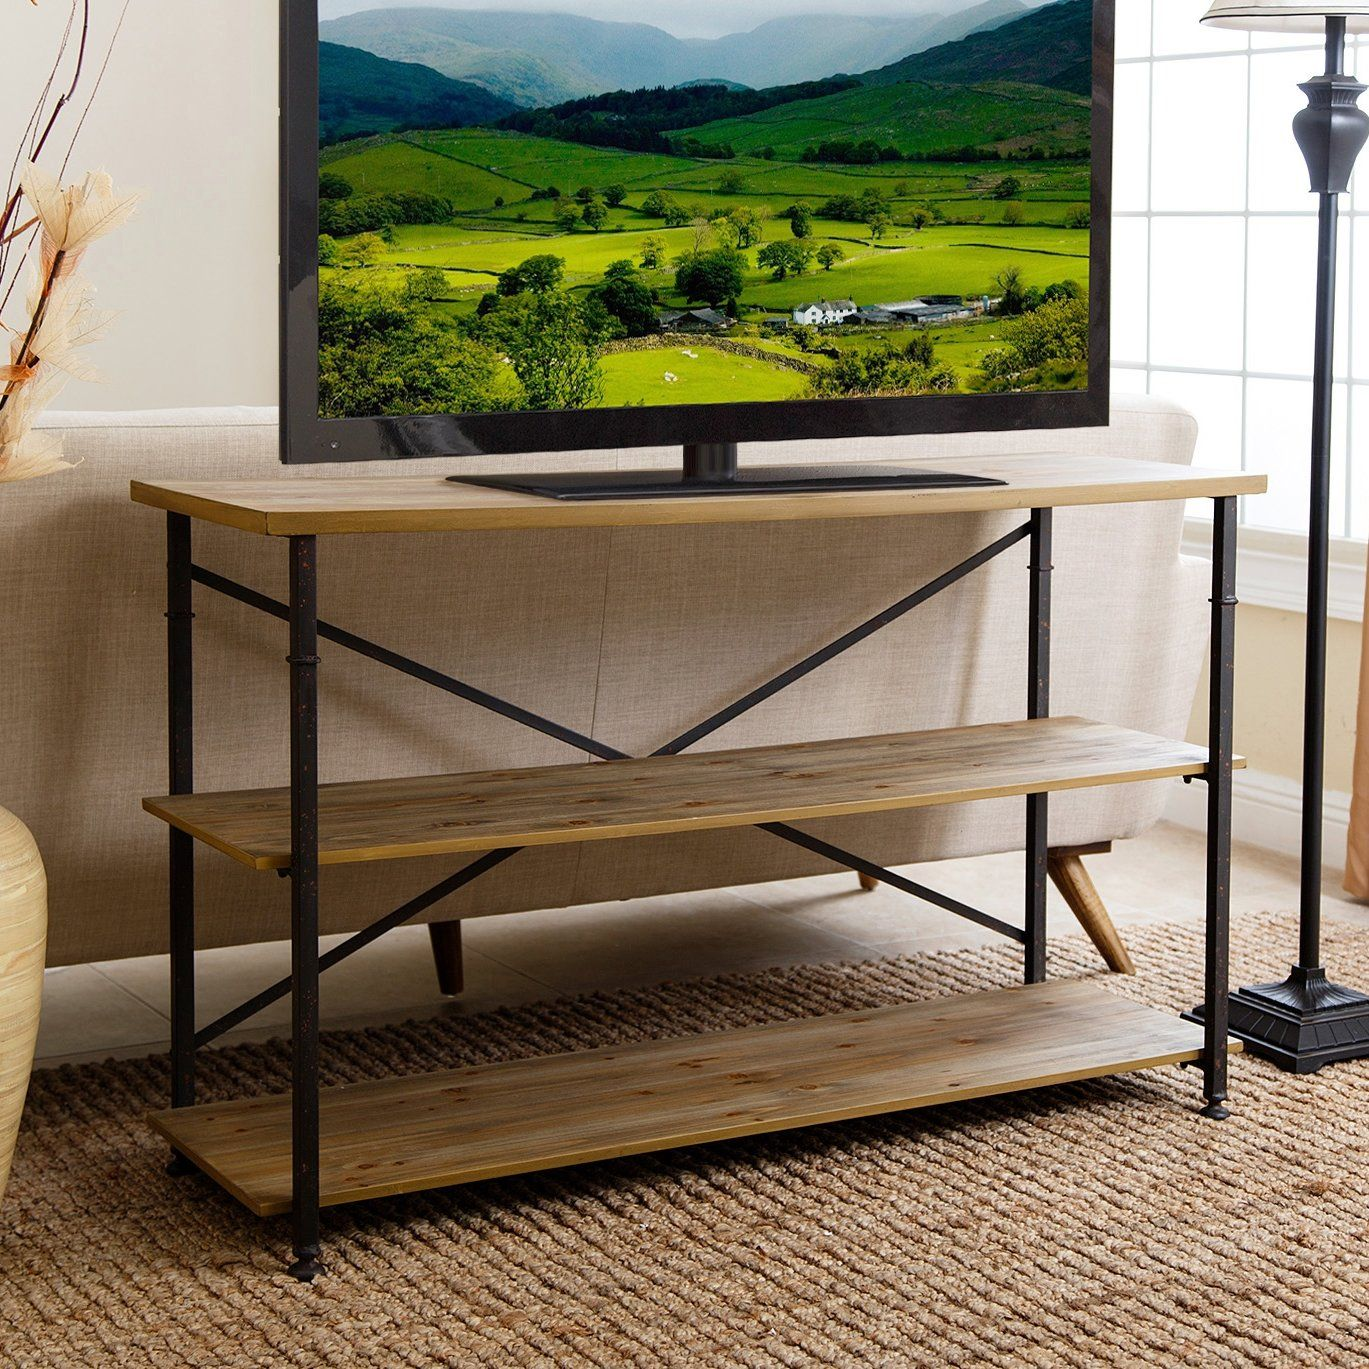 Amberly tv stand dc home pinterest tv stands and tvs